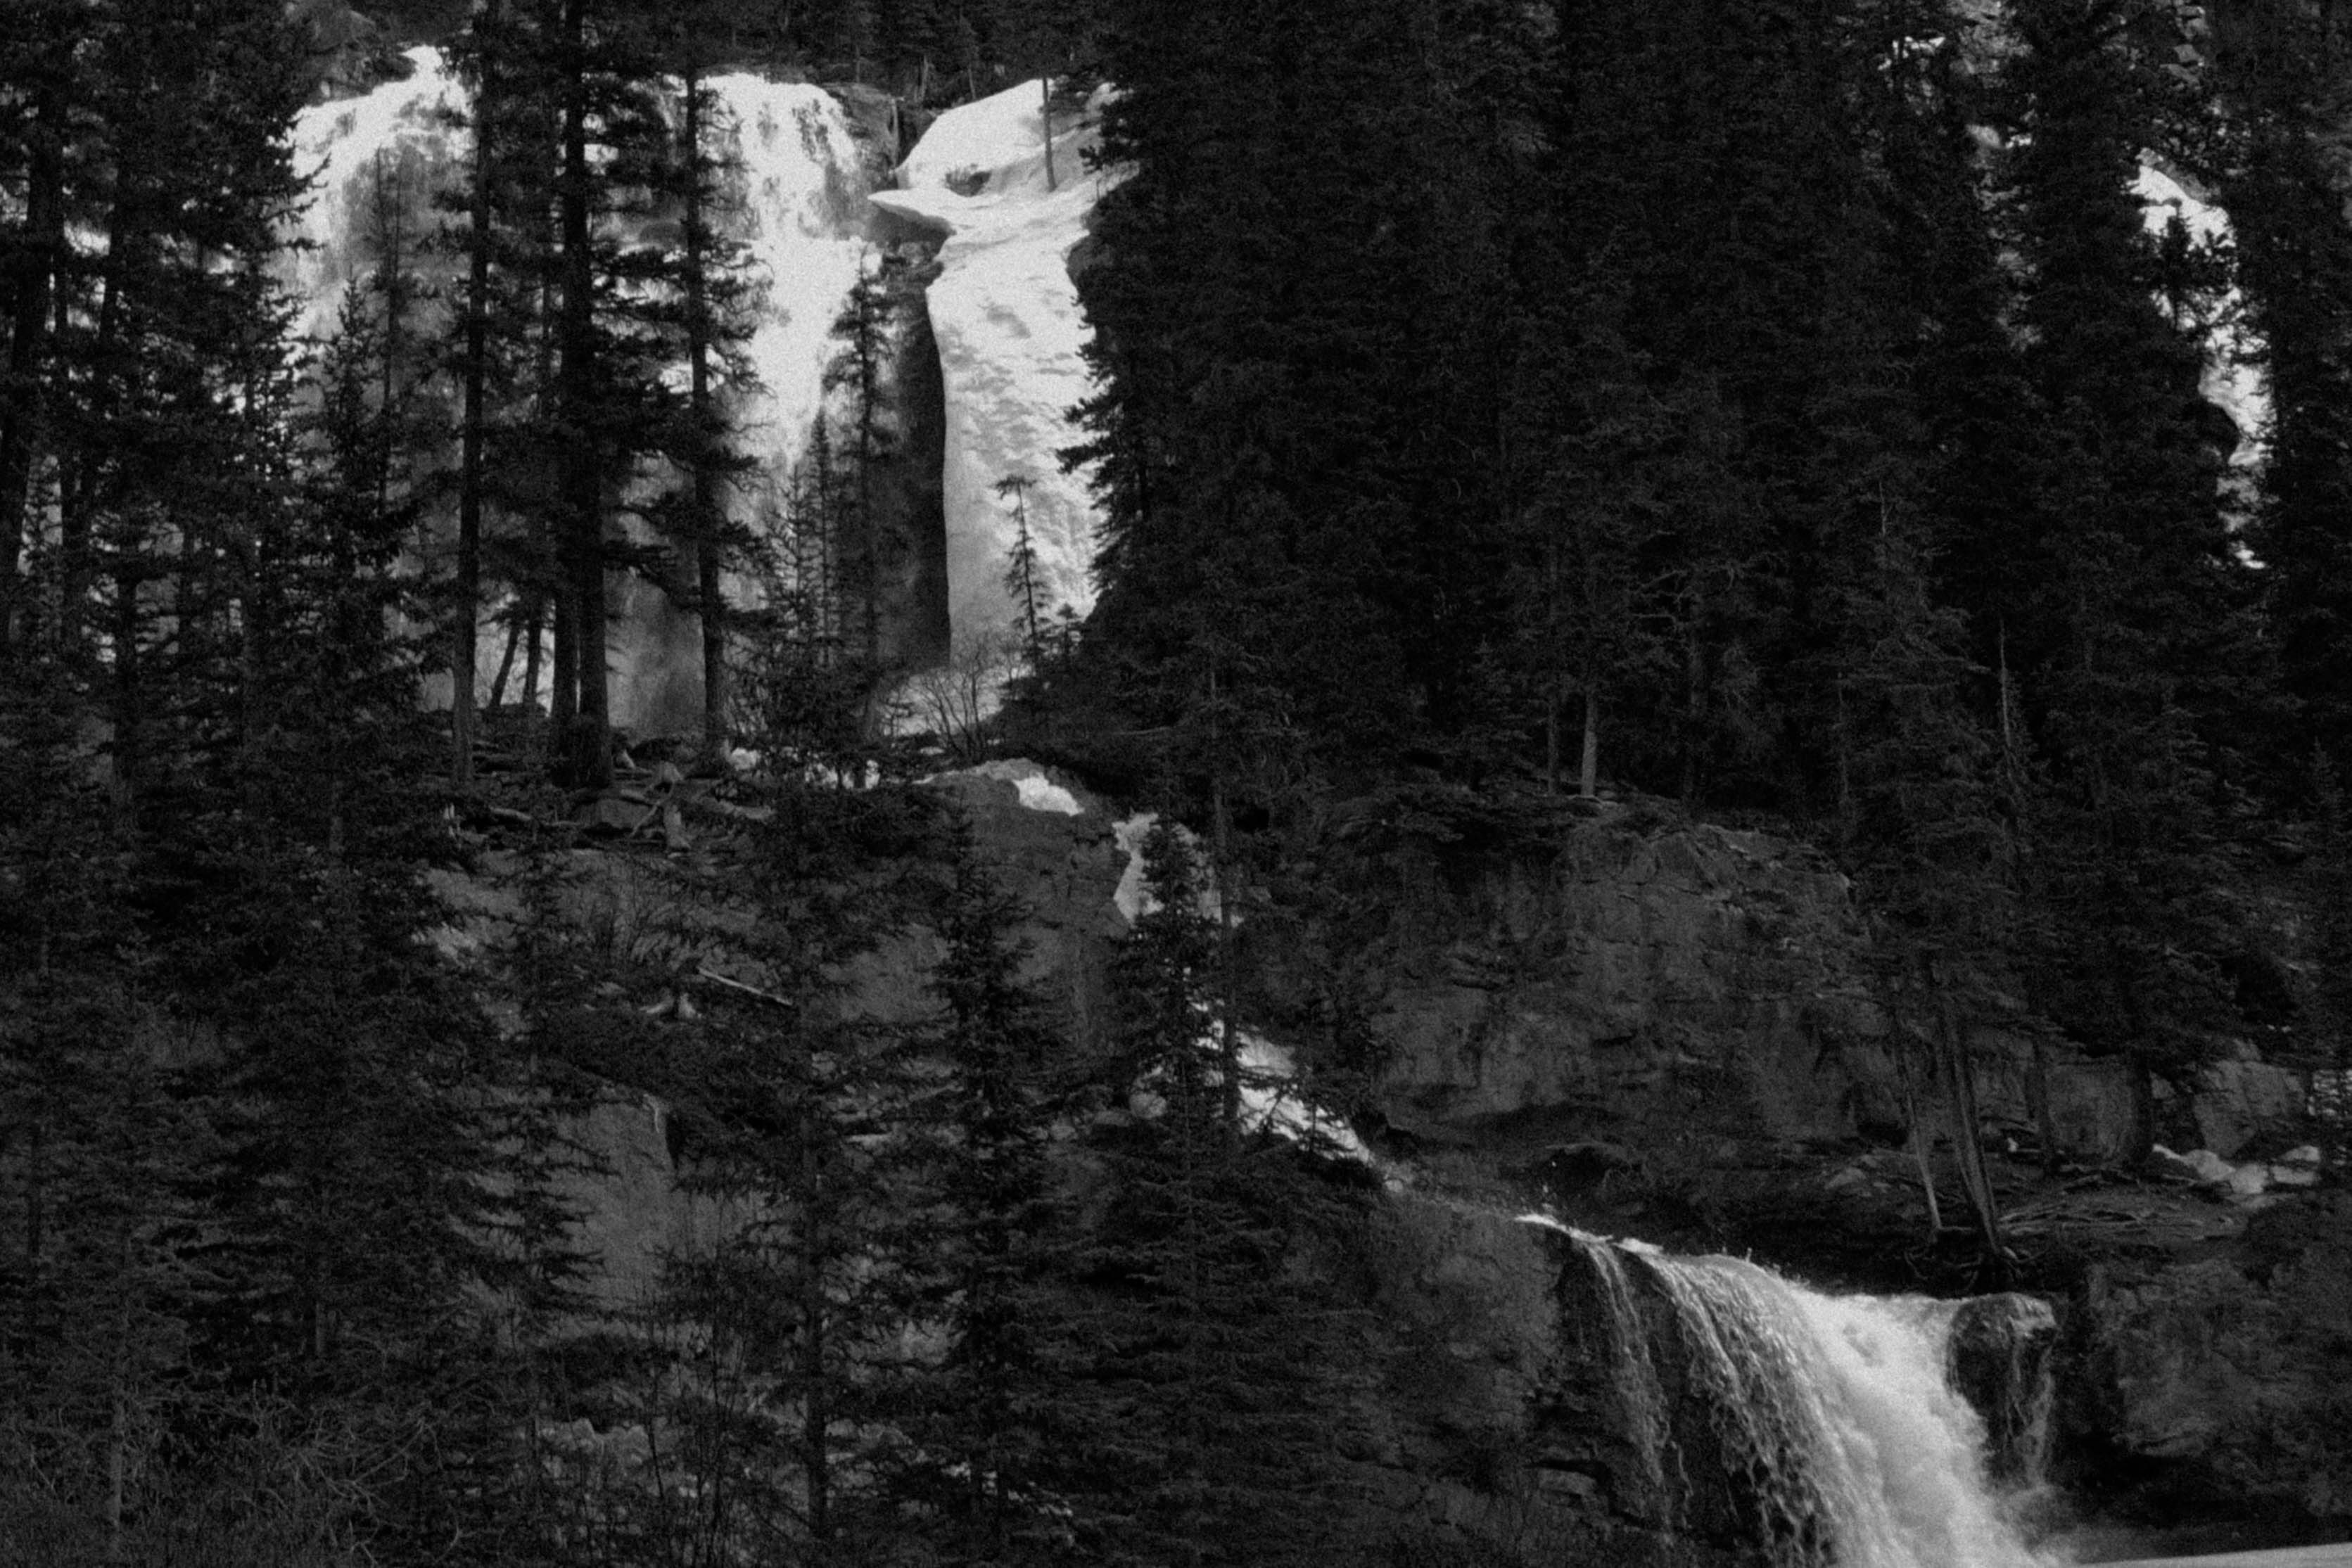 grayscale photo of waterfalls near tree